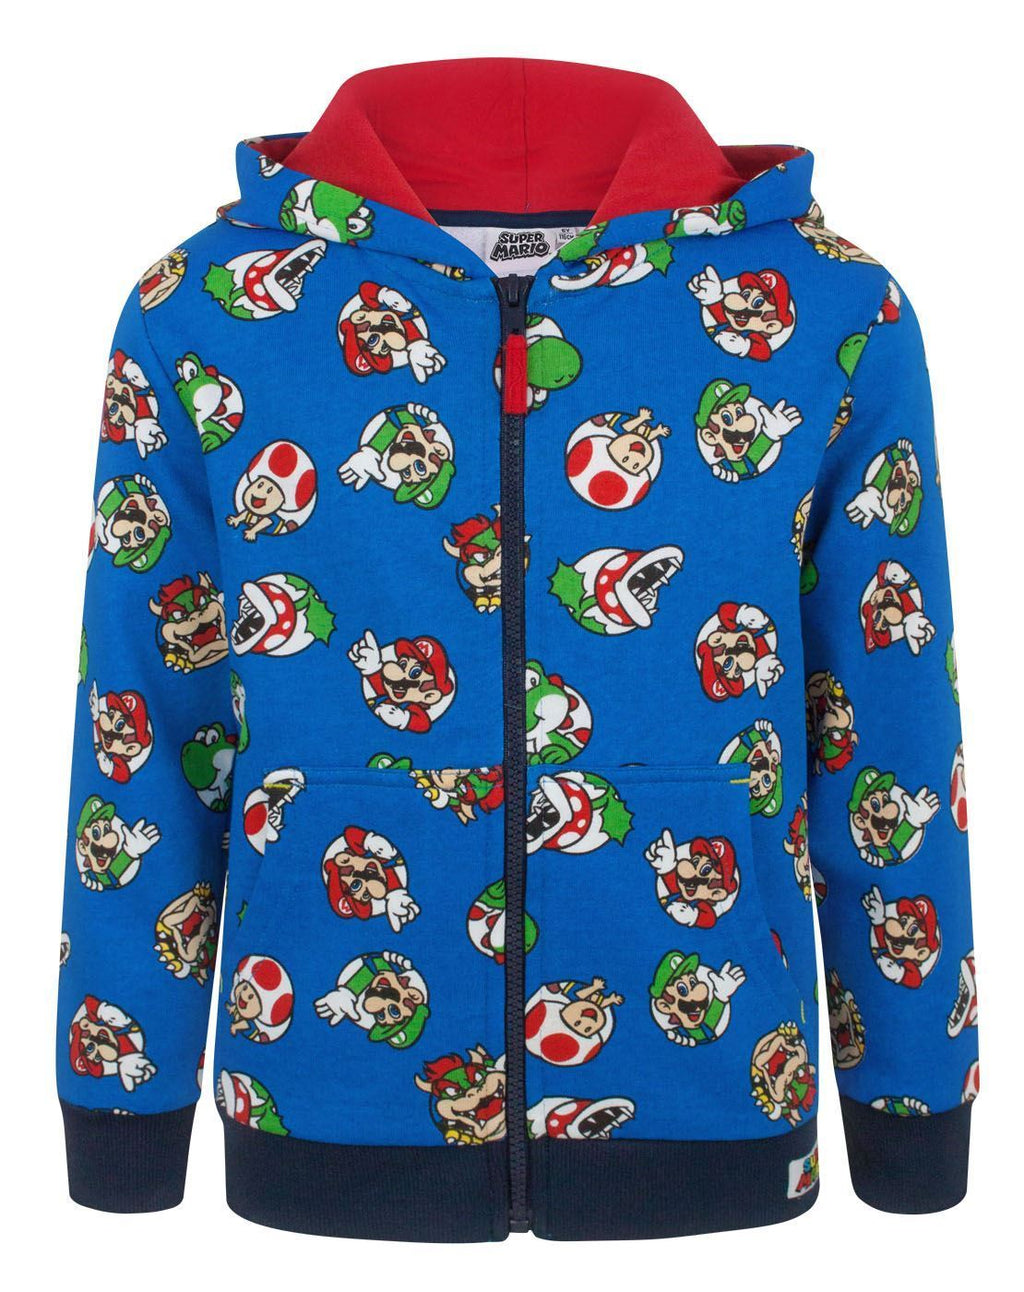 Super Mario Characters Boy's Zip Up Hoodie